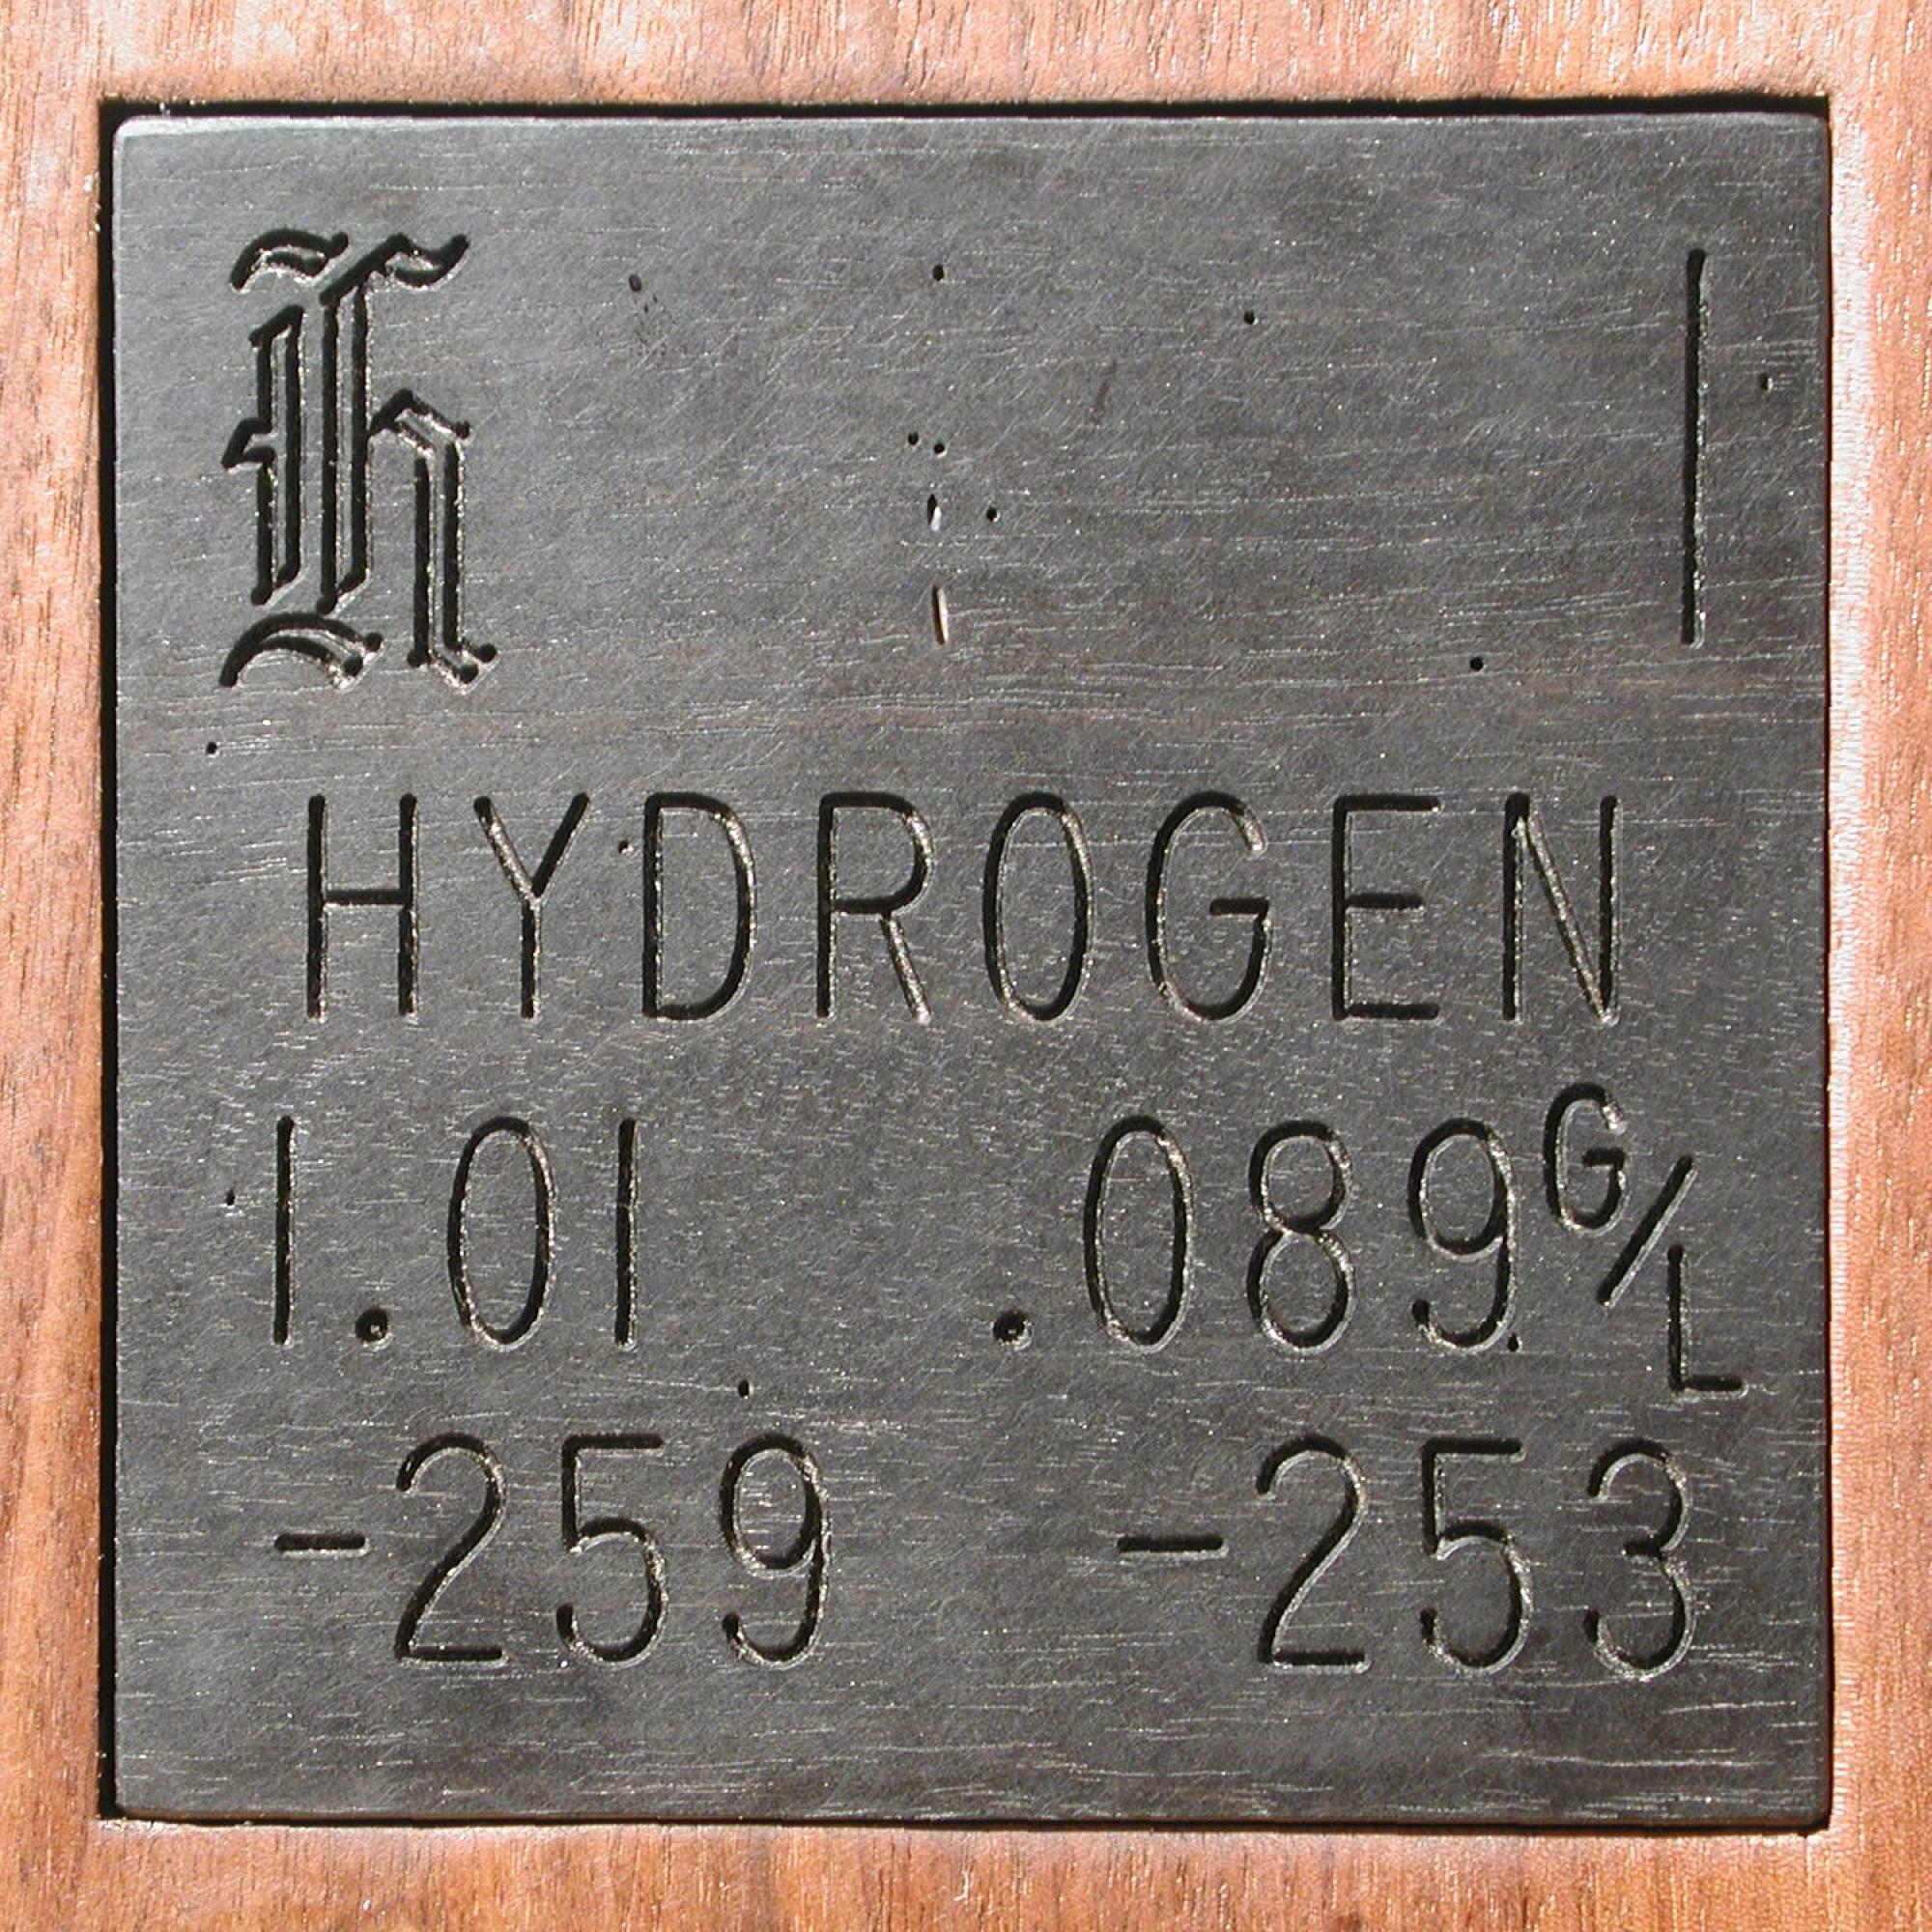 Samples from theodore gray 1369 in the periodic table hydrogen gamestrikefo Gallery